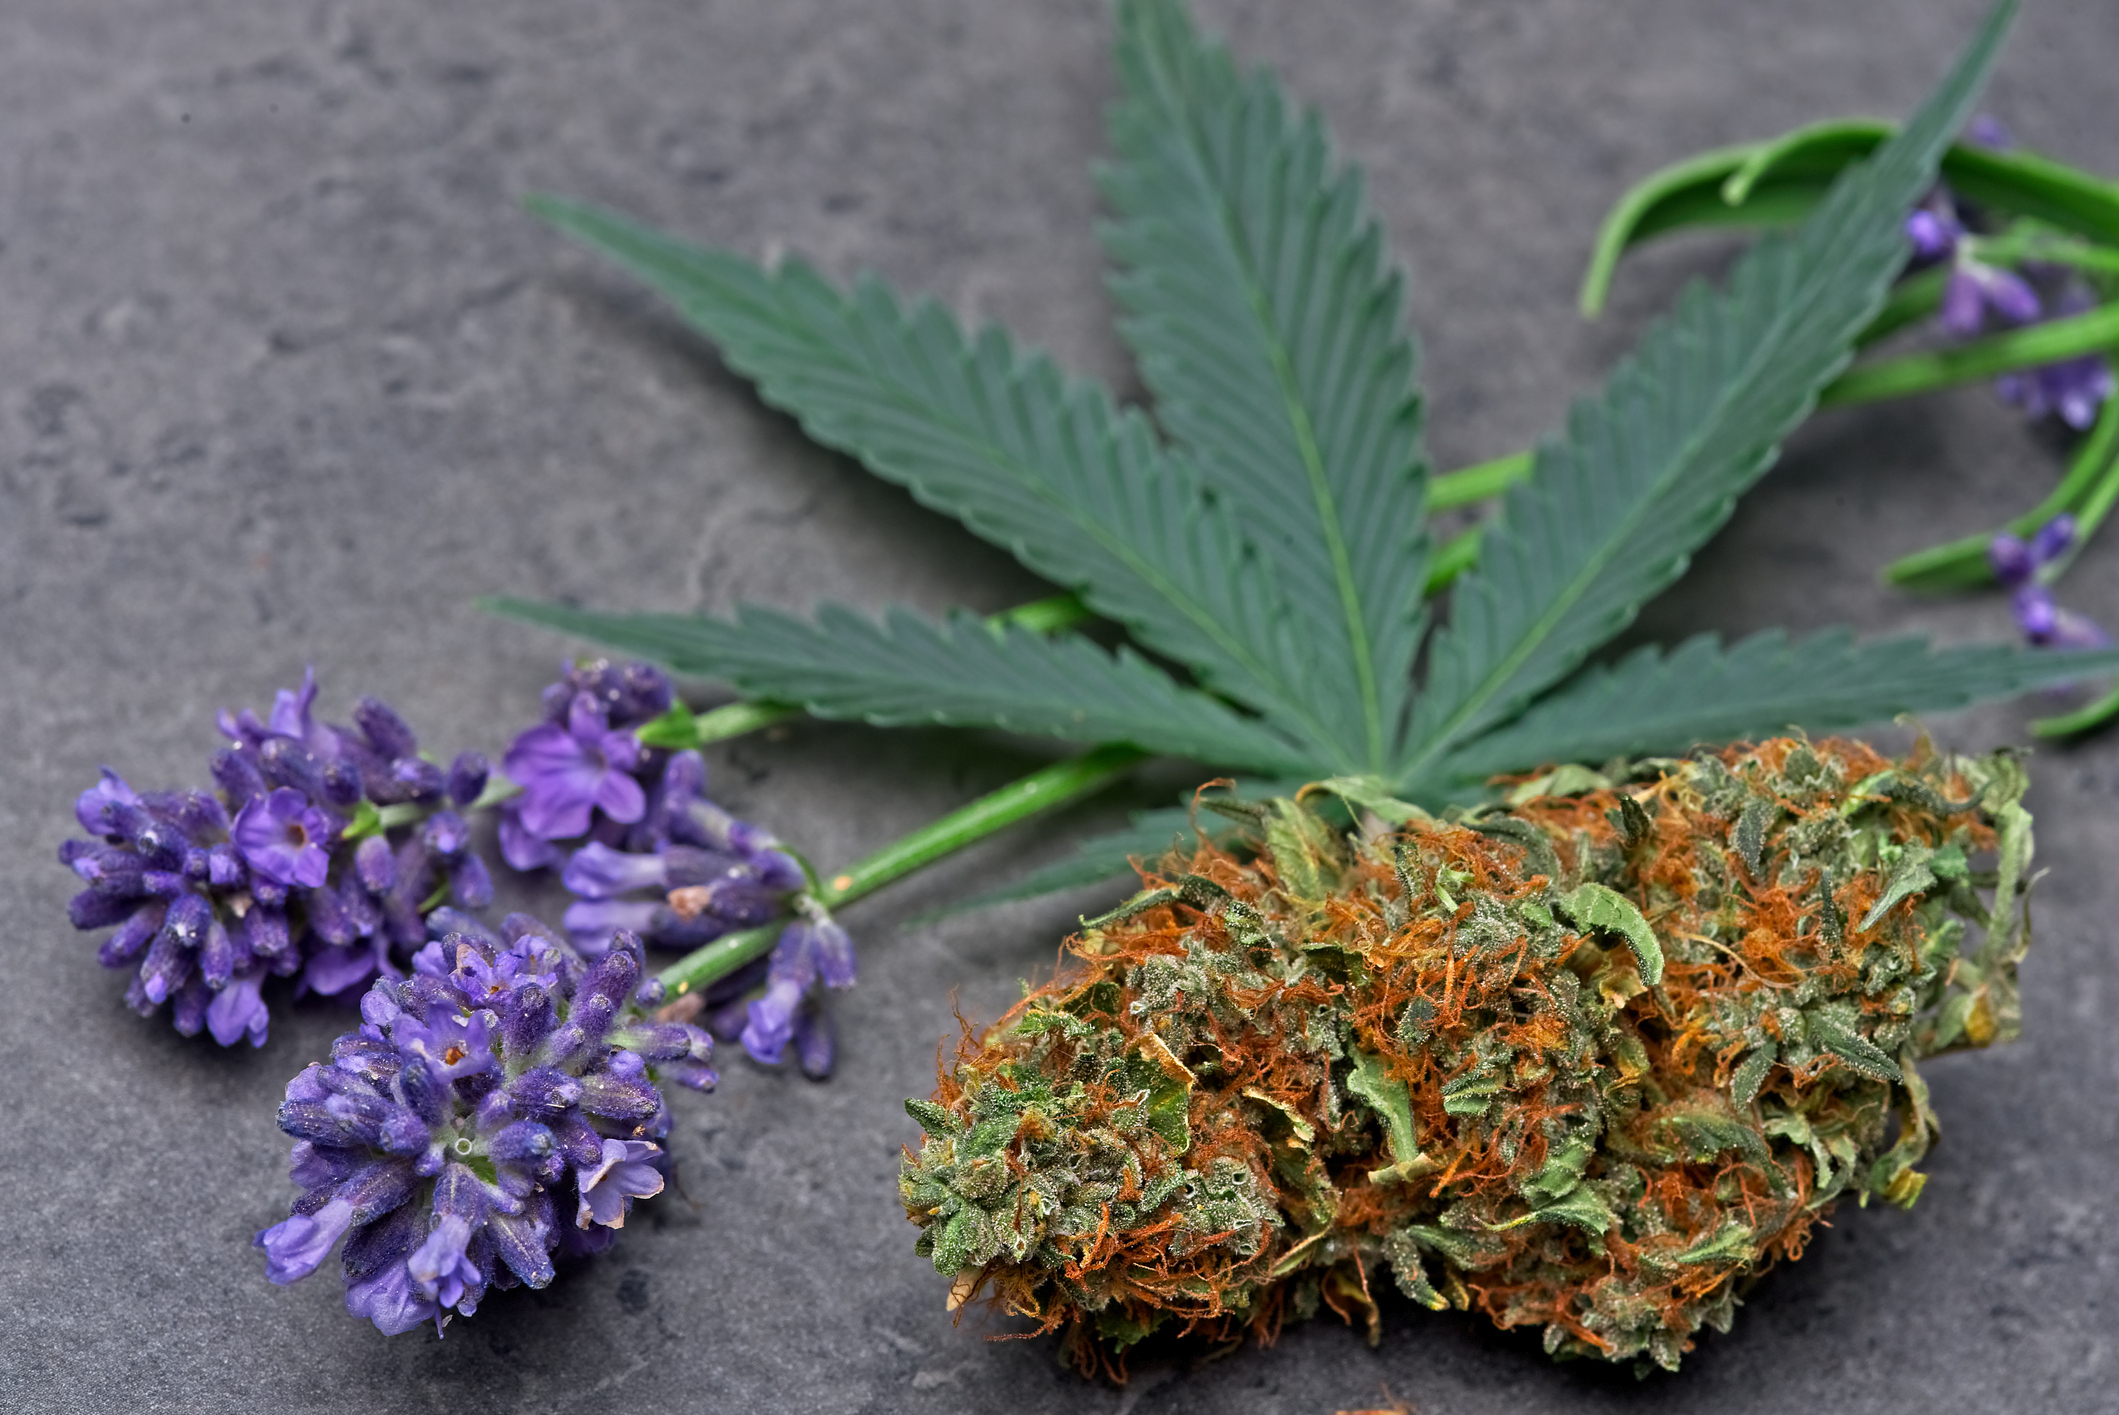 Can Cannabis Terpenes Really Customize or Direct Our Highs?